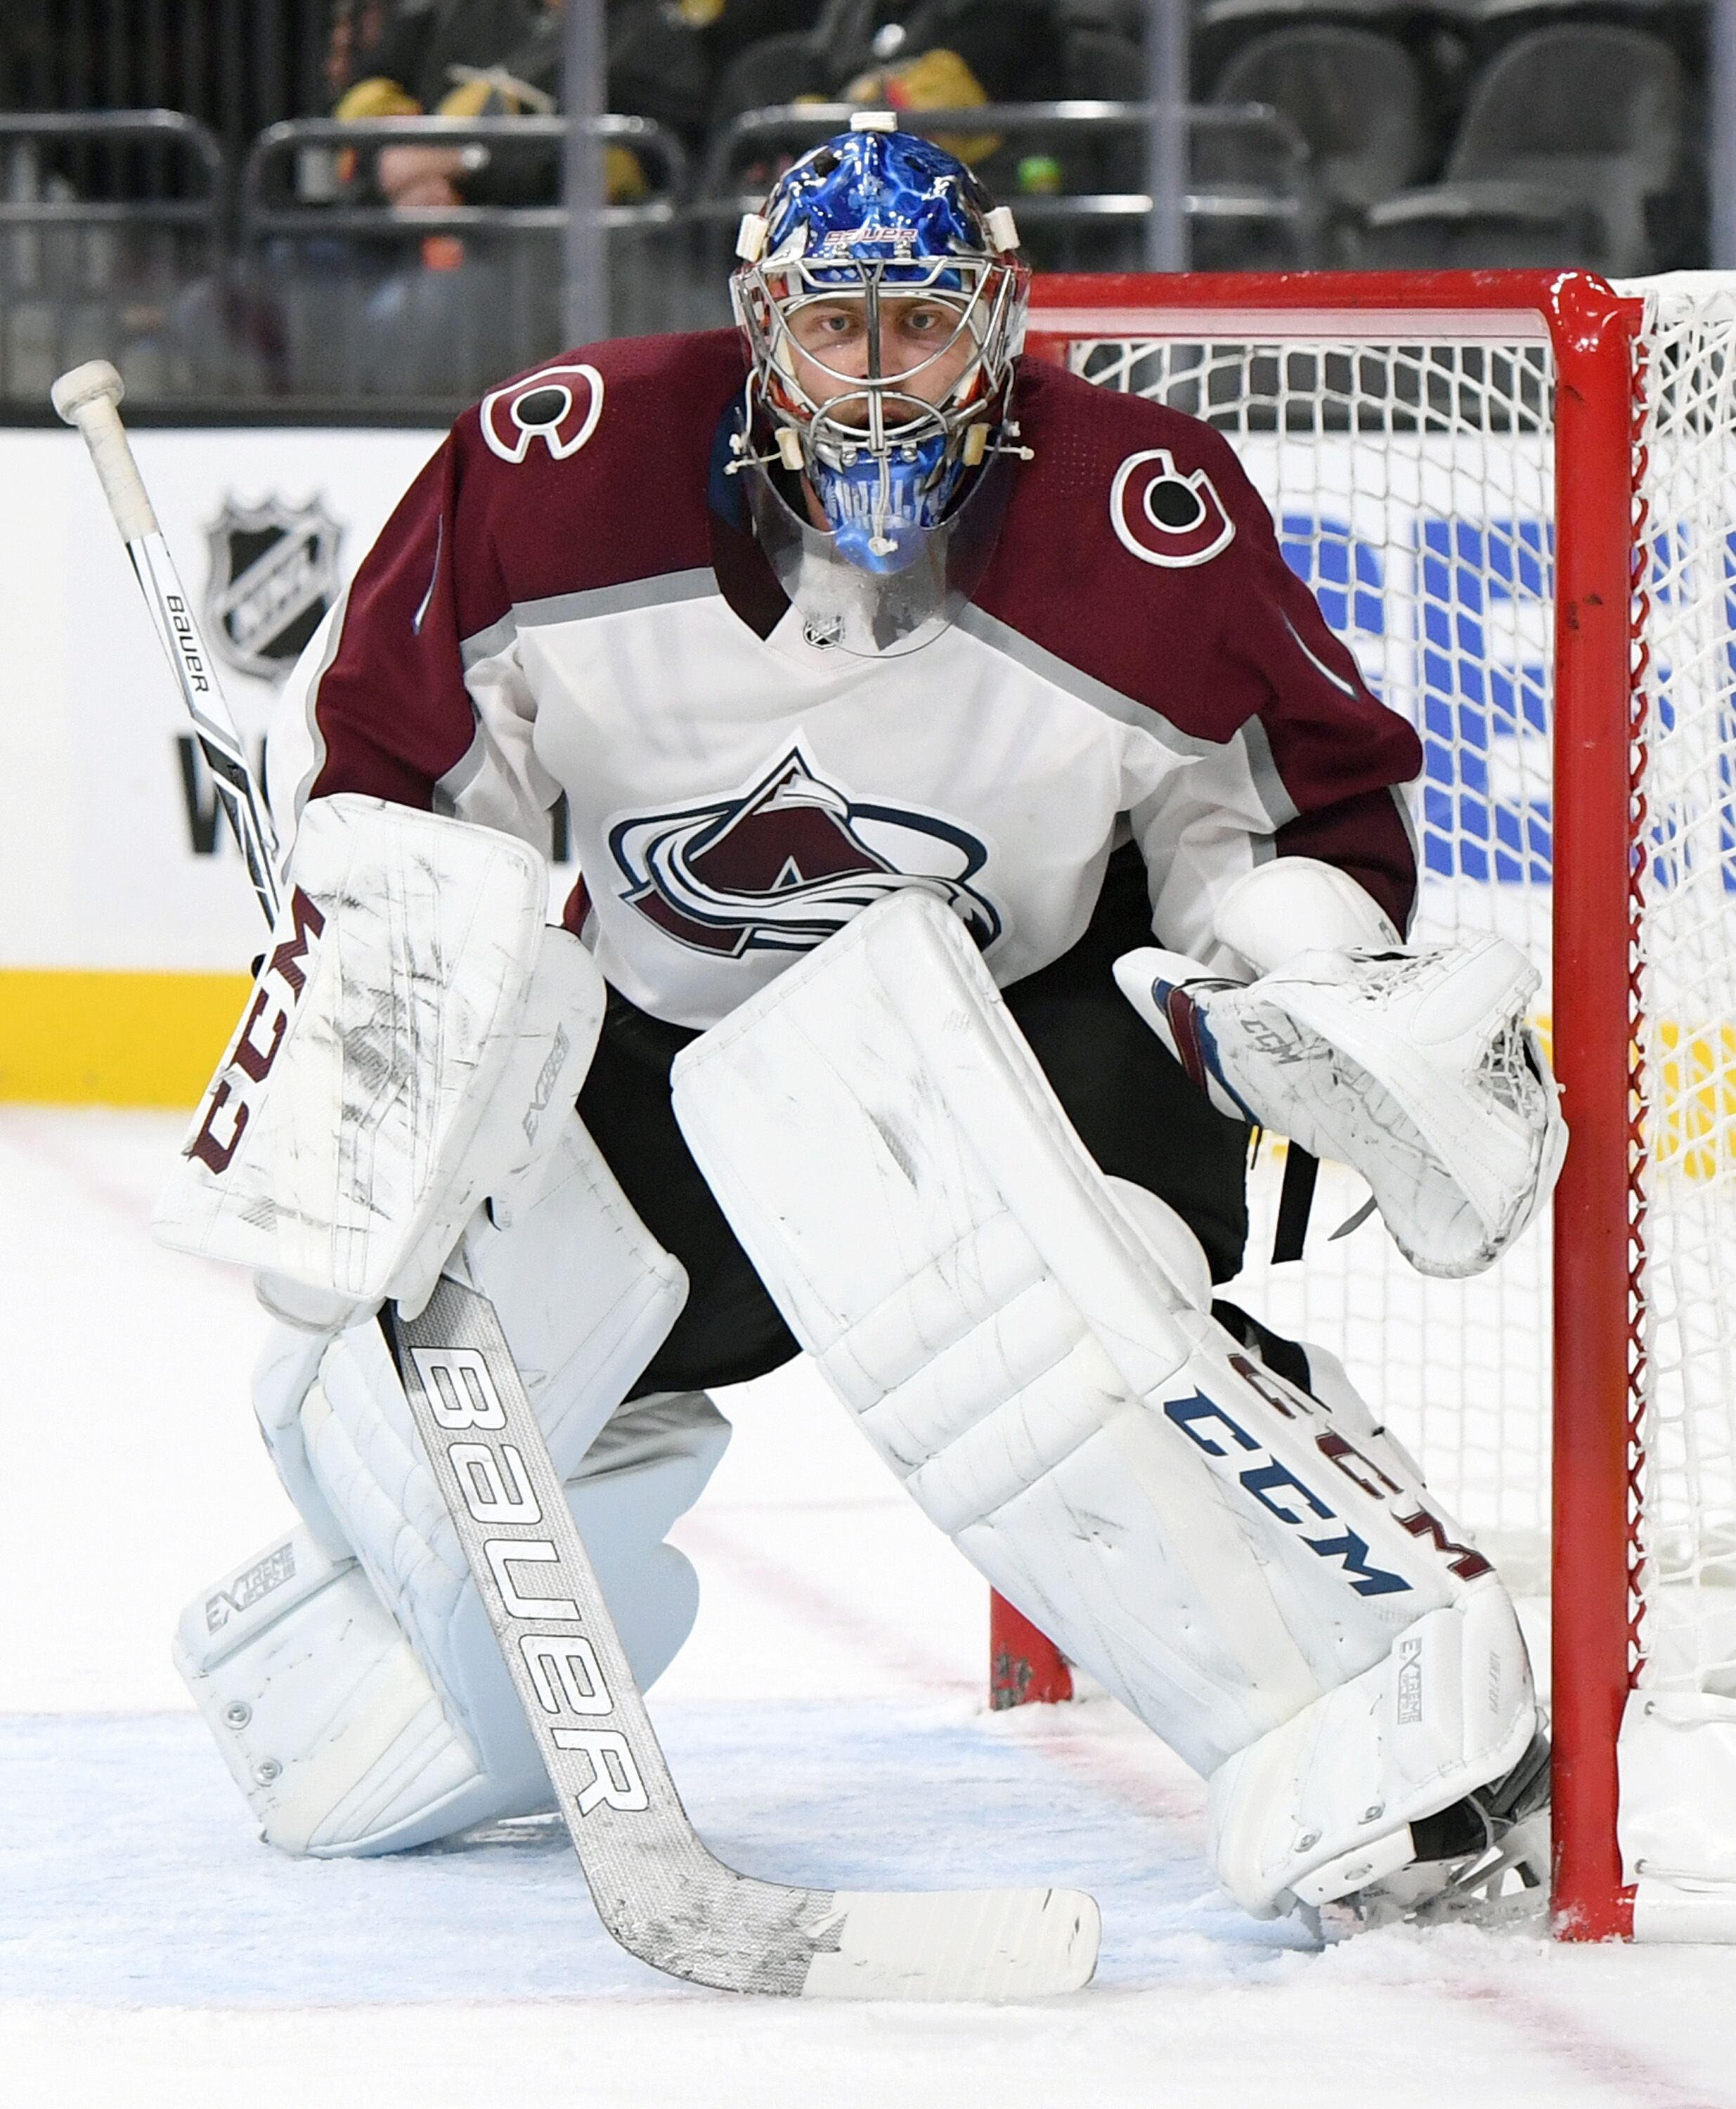 f7a78572f58 Colorado Avalanche Goalie Semyon Varlamov Appears Back in Form